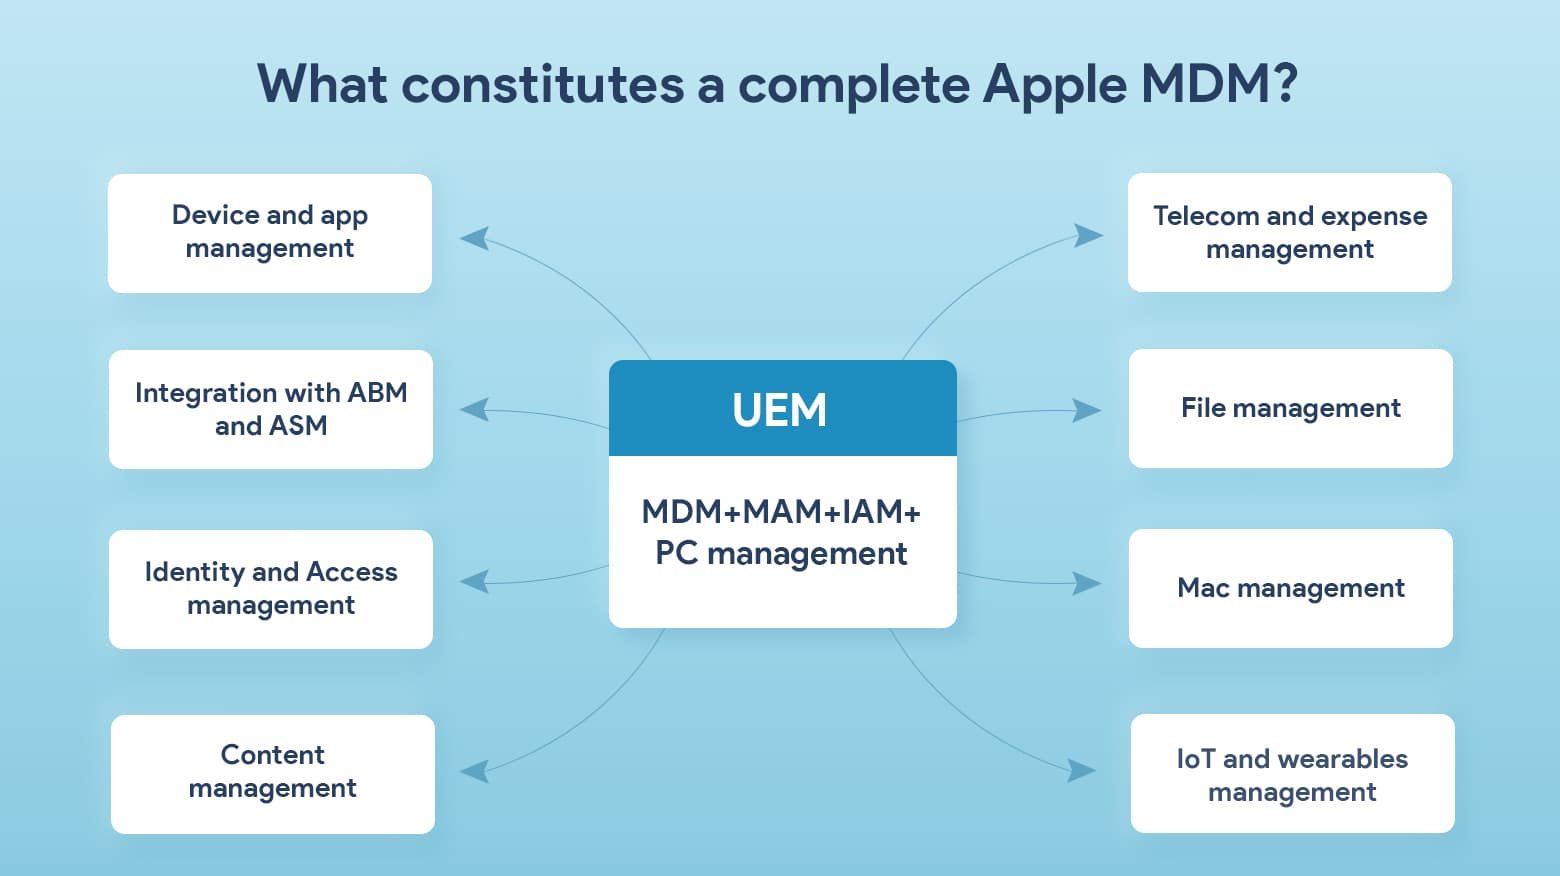 Comprehensive Apple MDM involves many moving parts, making a complete solution essential